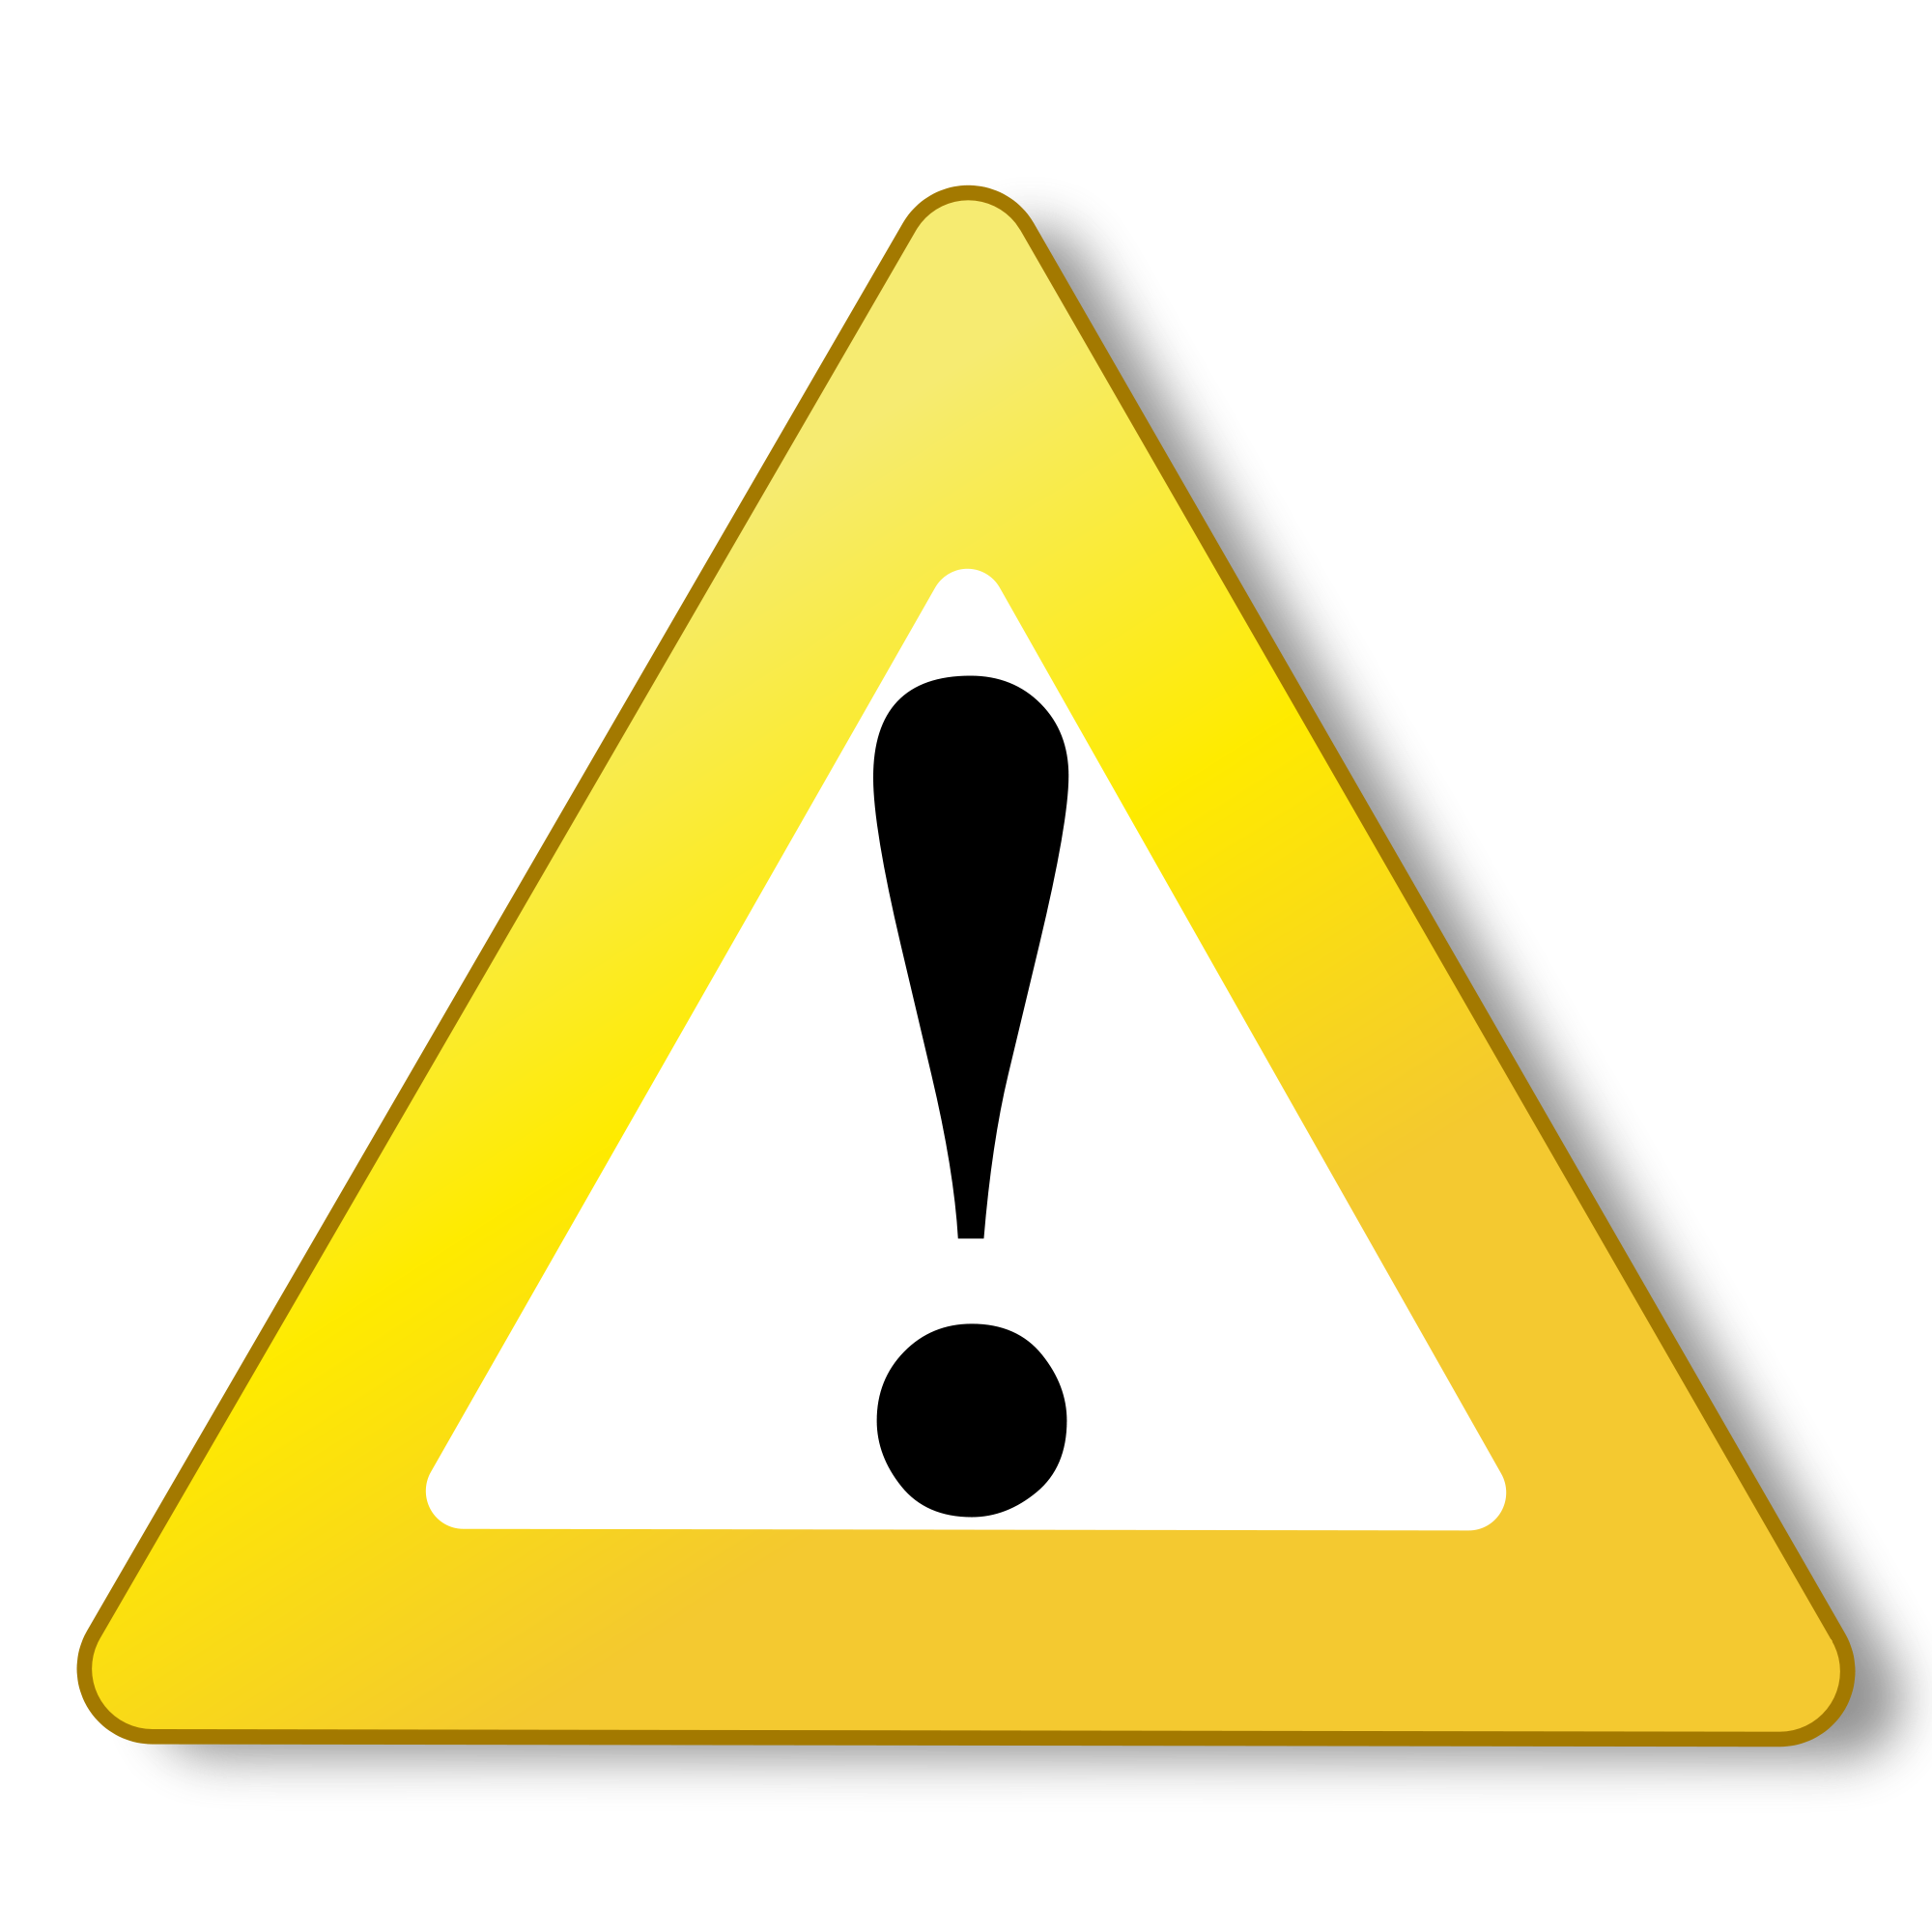 warning yellow icon